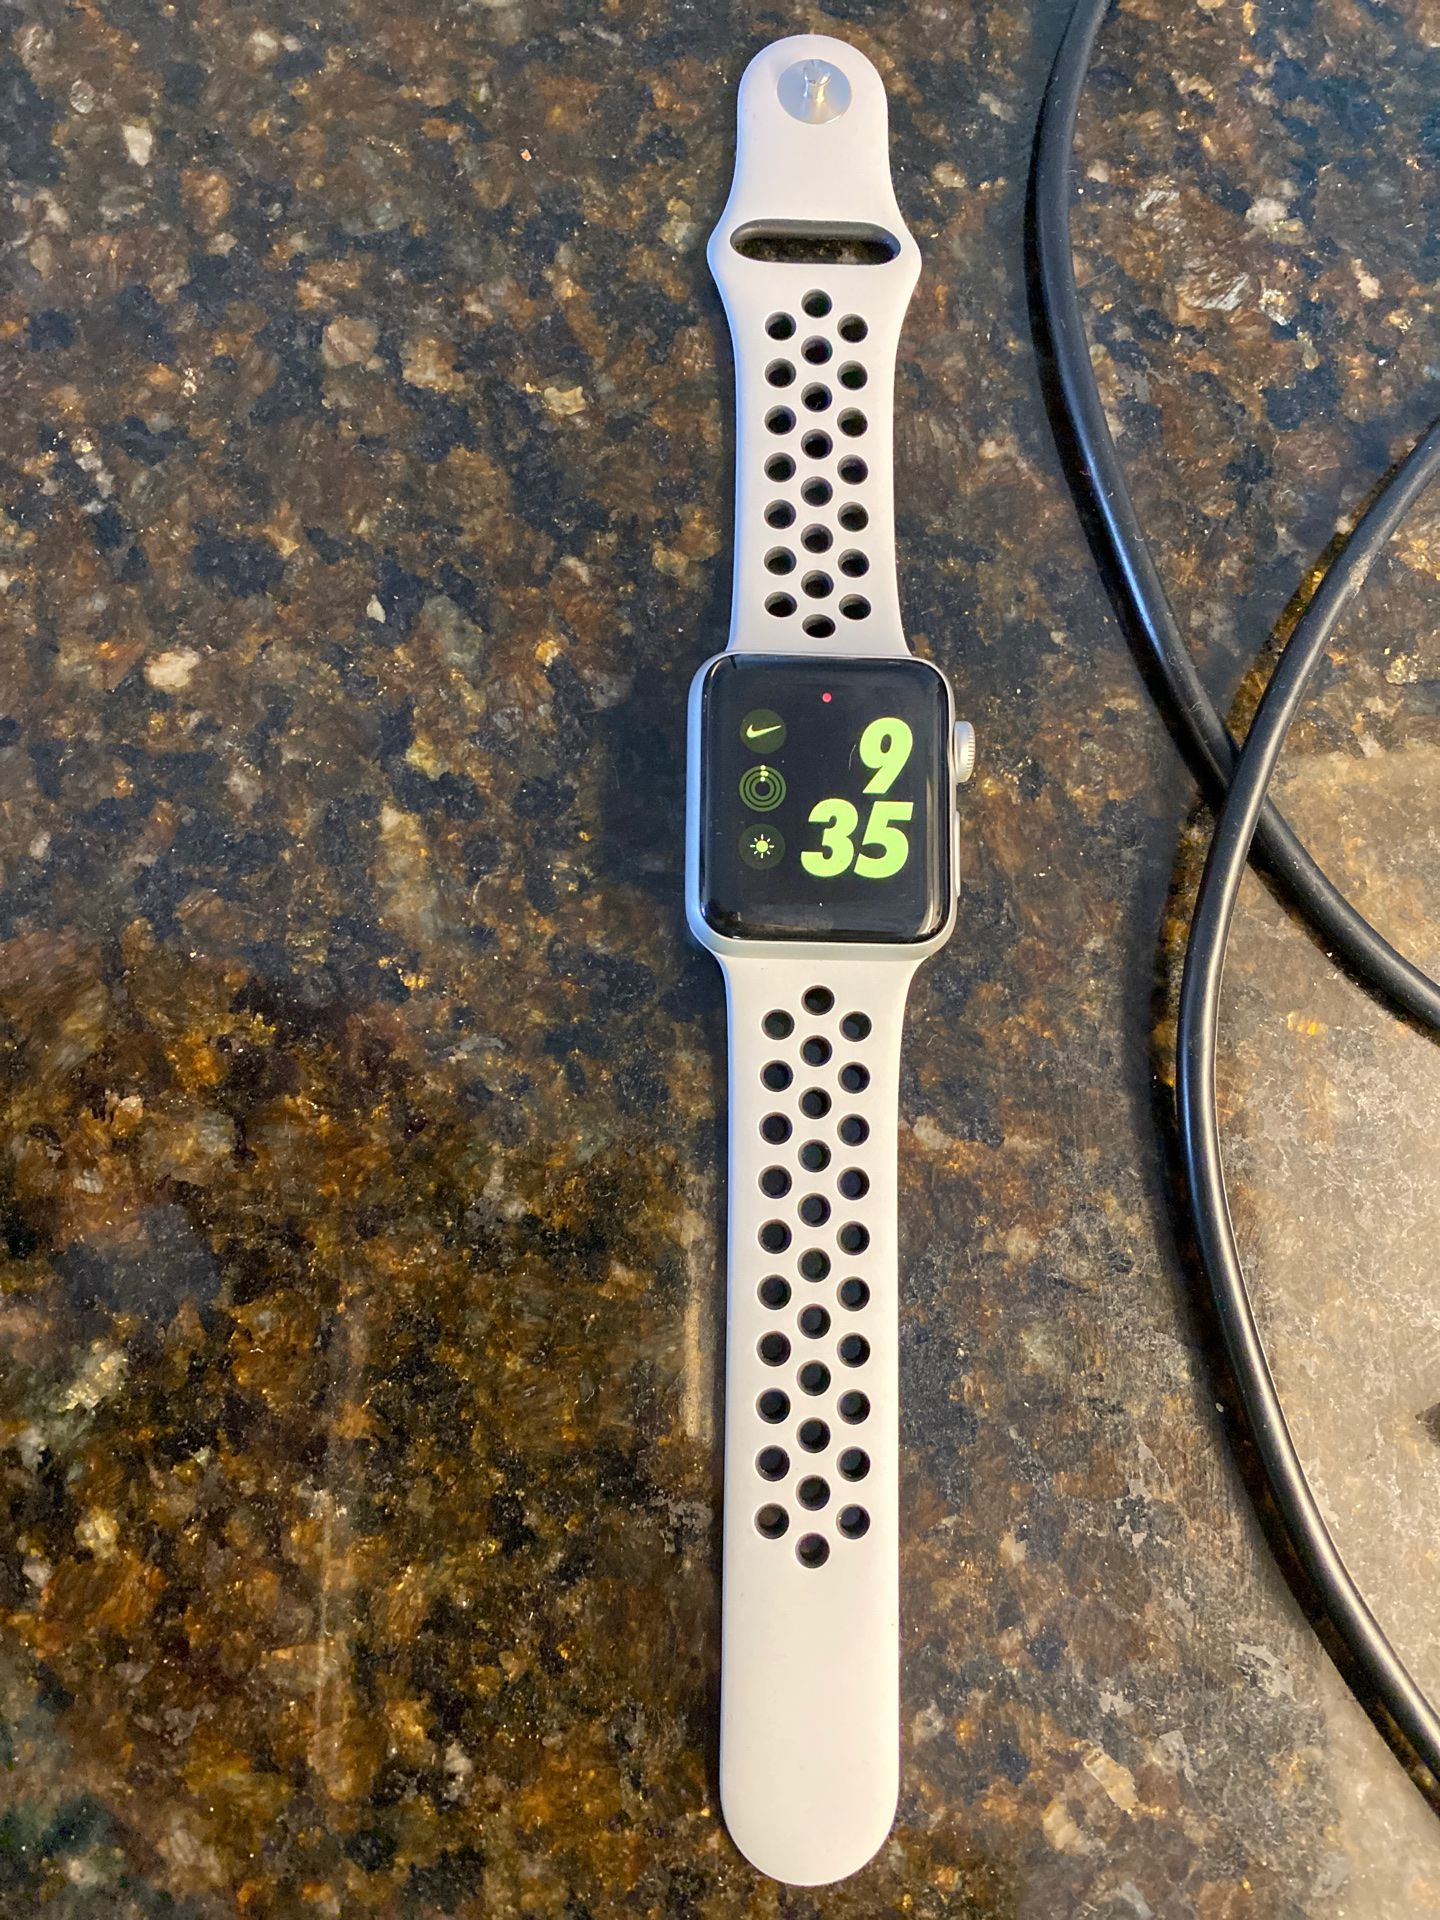 Apple Watch series 3, 38mm gps and cellular